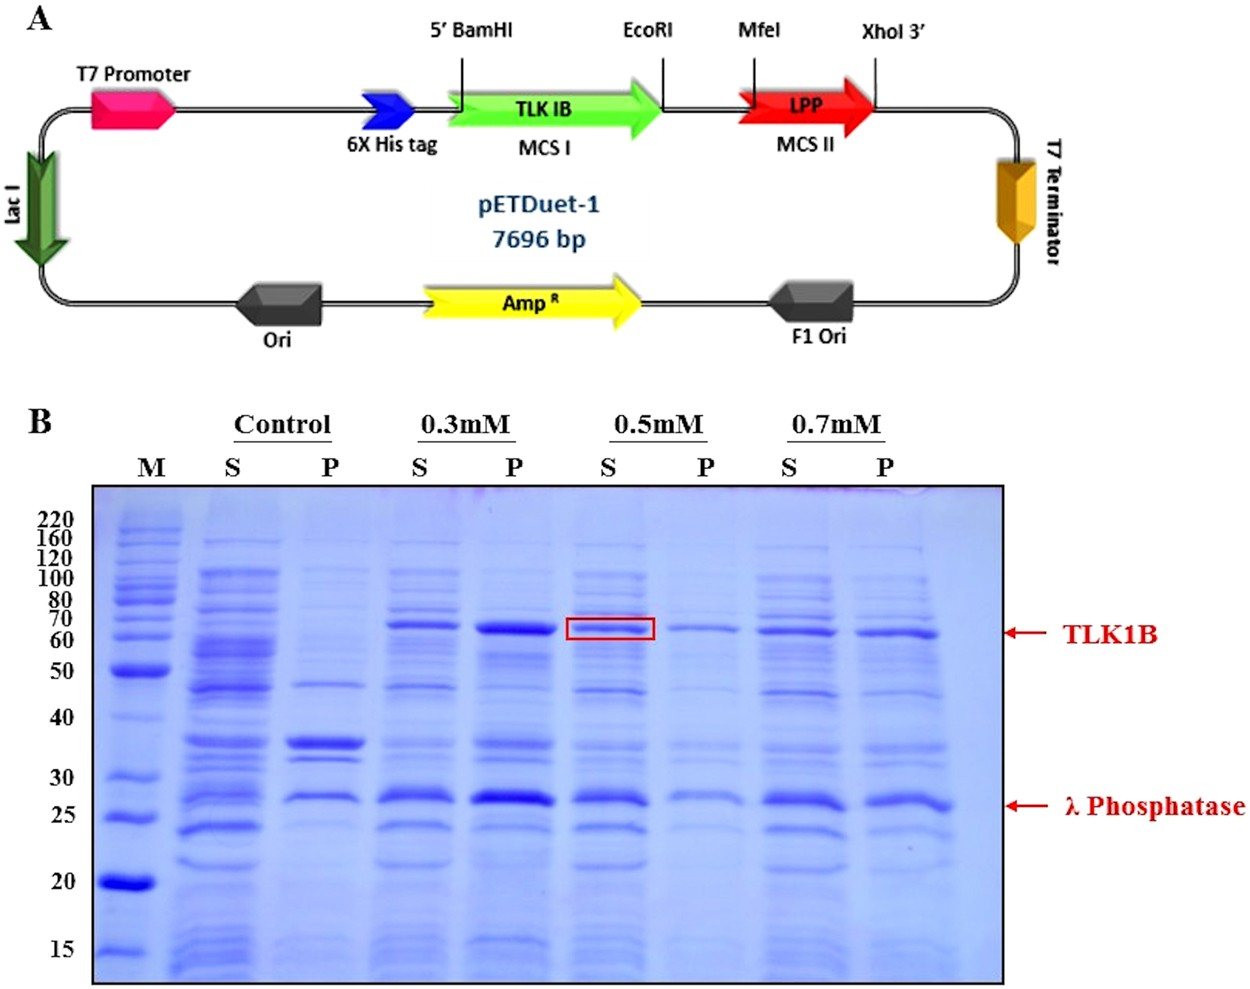 High Yield Bacterial Expression Purification And Characterisation Information Society 10 Watt Amplifier Electronic Circuit Schematic Of Bioactive Human Tousled Like Kinase 1b Involved In Cancer Scientific Reports